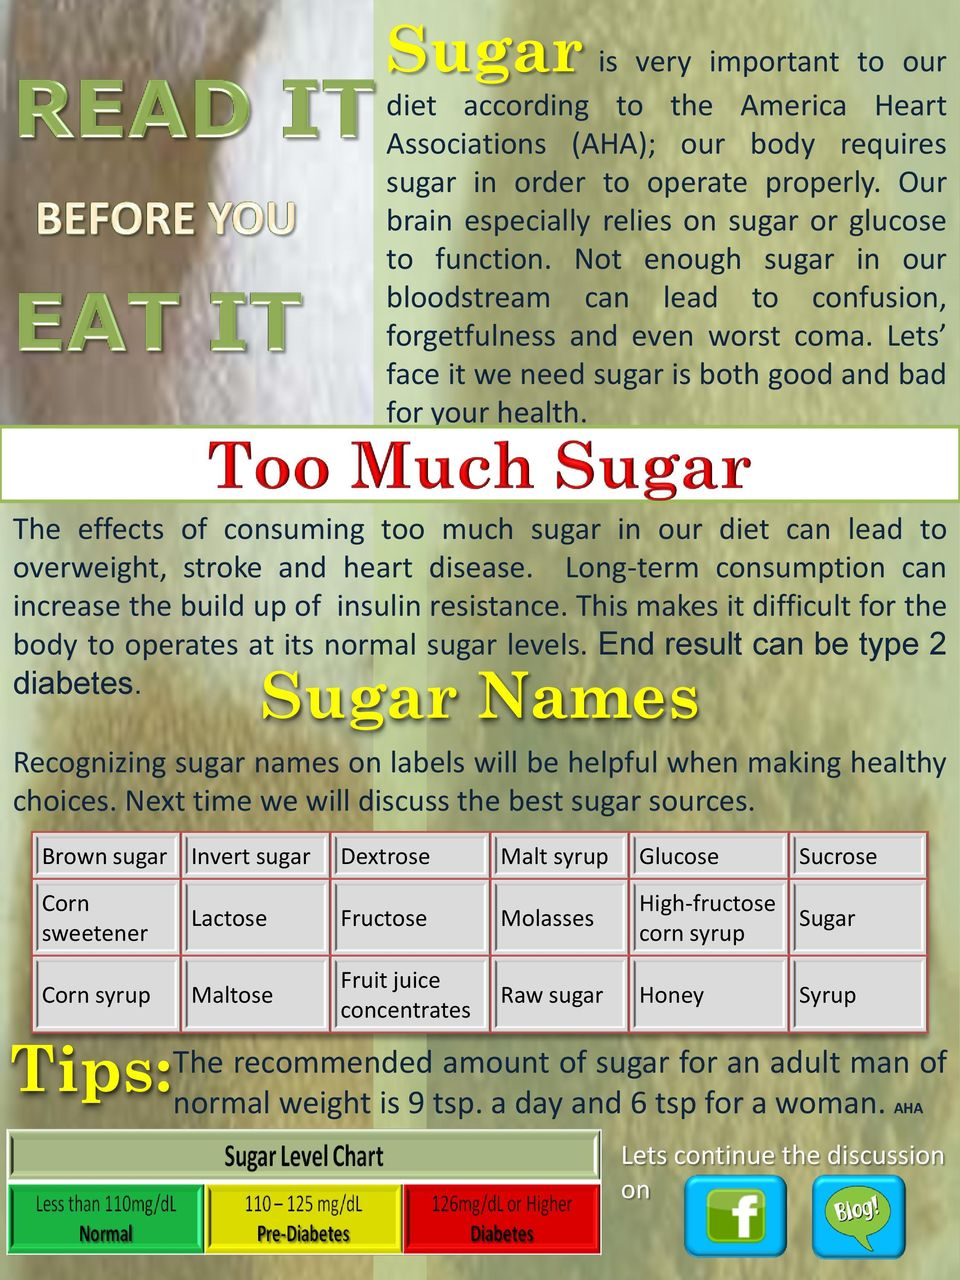 Lets face it we need sugar is both good and bad for your health. The effects of consuming too much sugar in our diet can lead to overweight, stroke and heart disease.